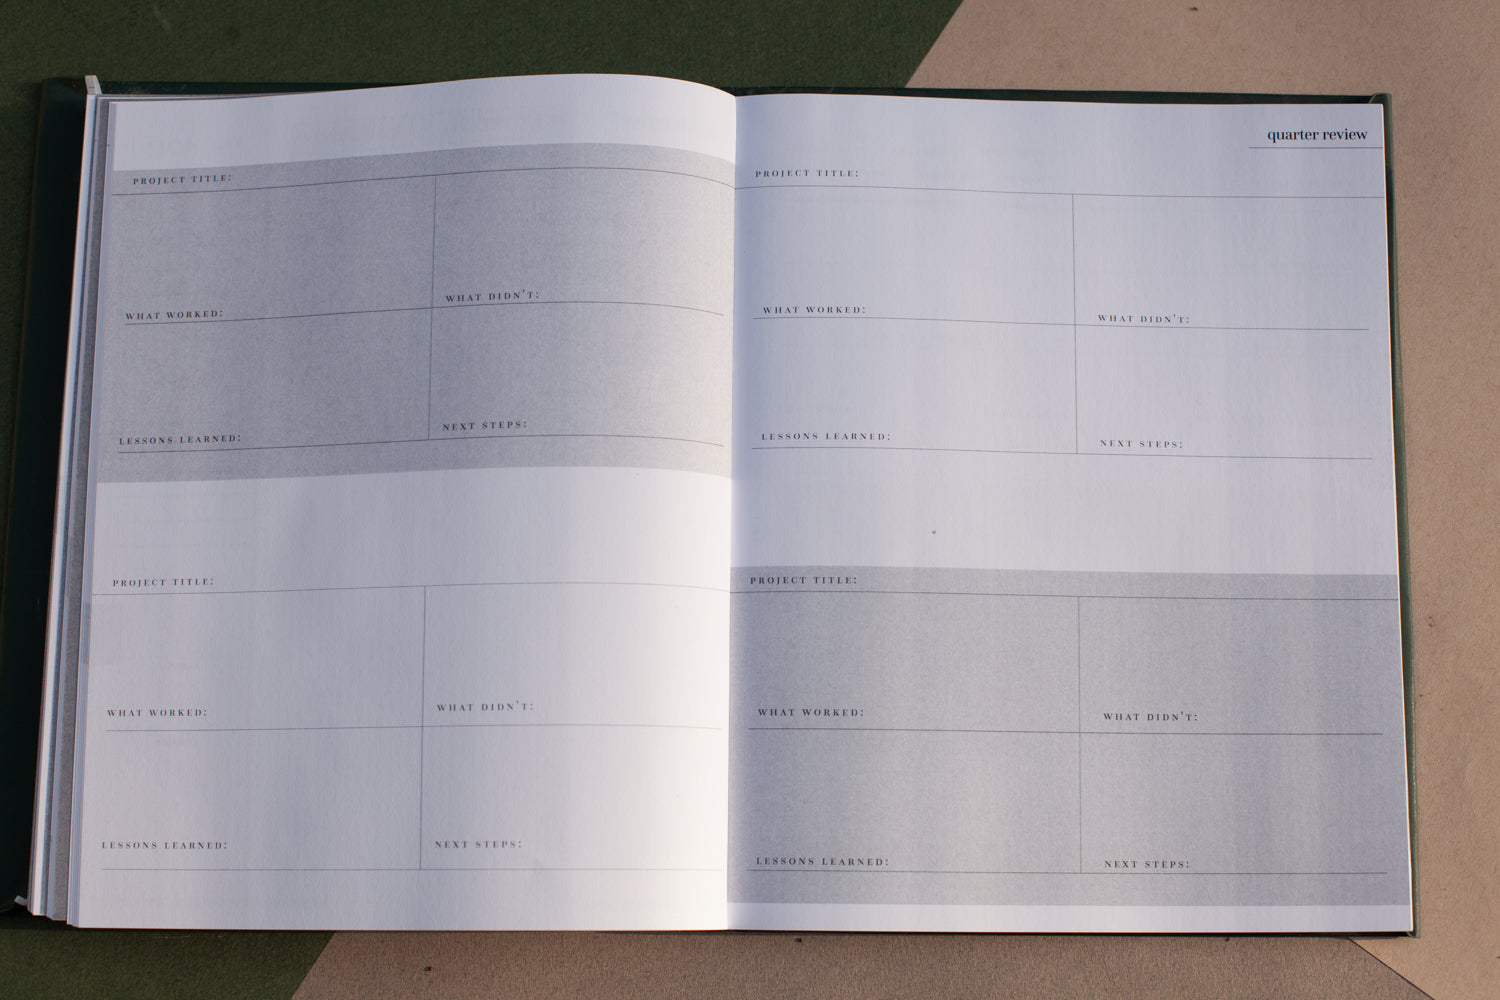 Alter Planning Co's Annual Planner Quarterly Review Layout